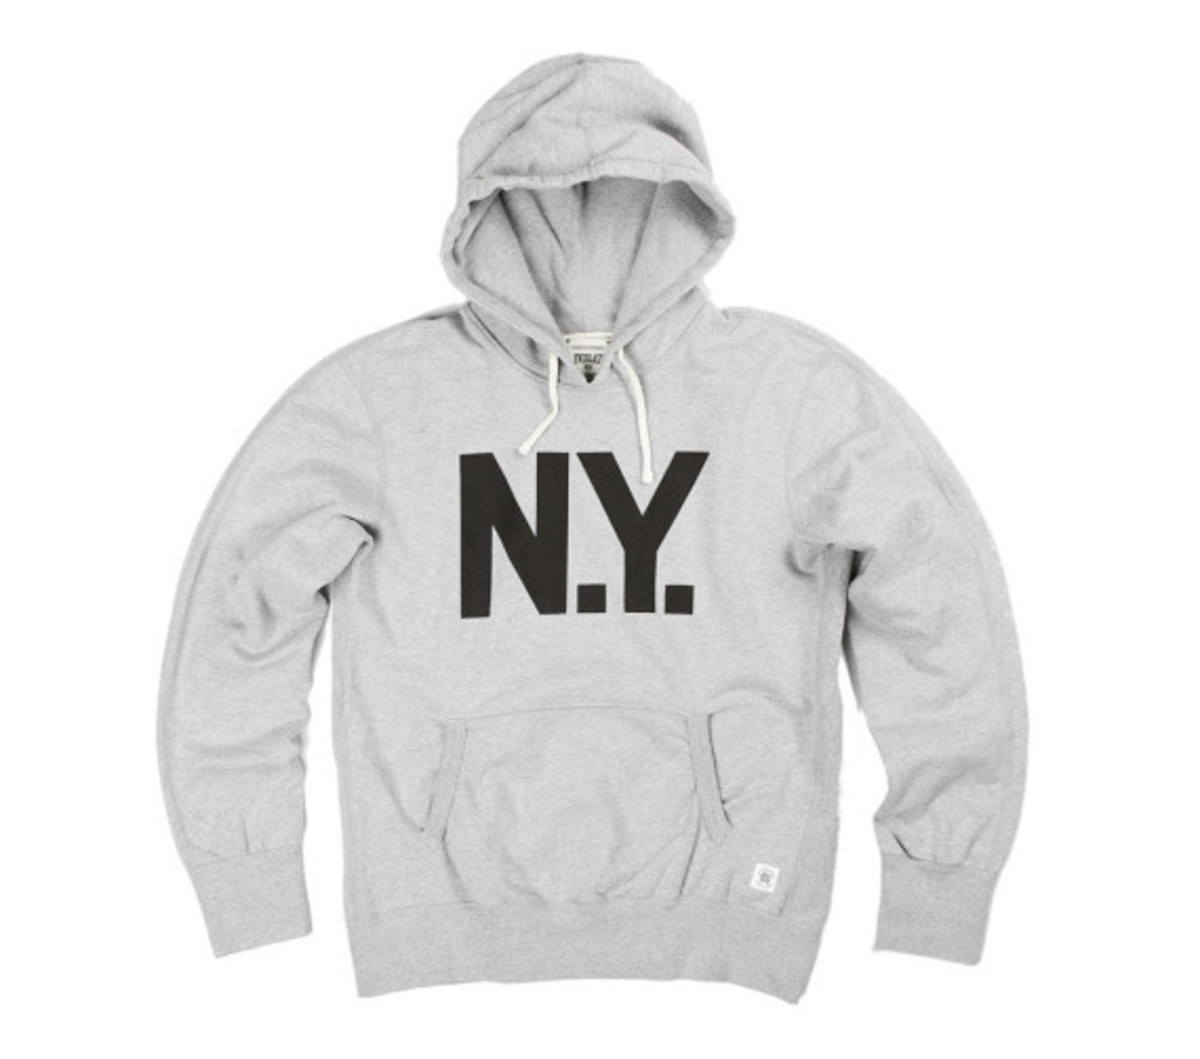 reigning-champ-everlast-capsule-collection-12